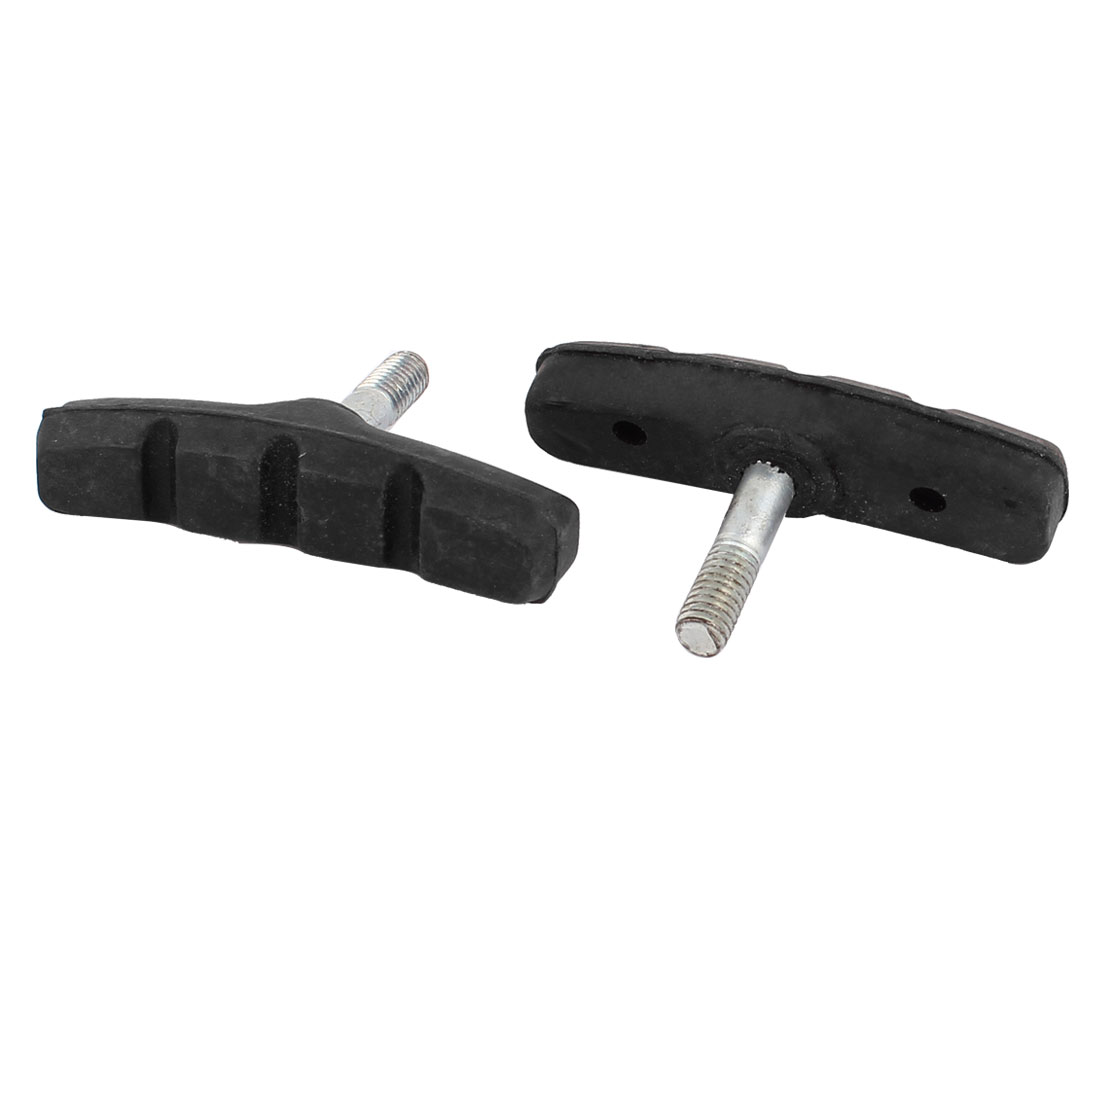 2 Pcs 6mm Thread Dia Black Carved Rubber Mountain Bicycle Bike Replacement Brake Pads